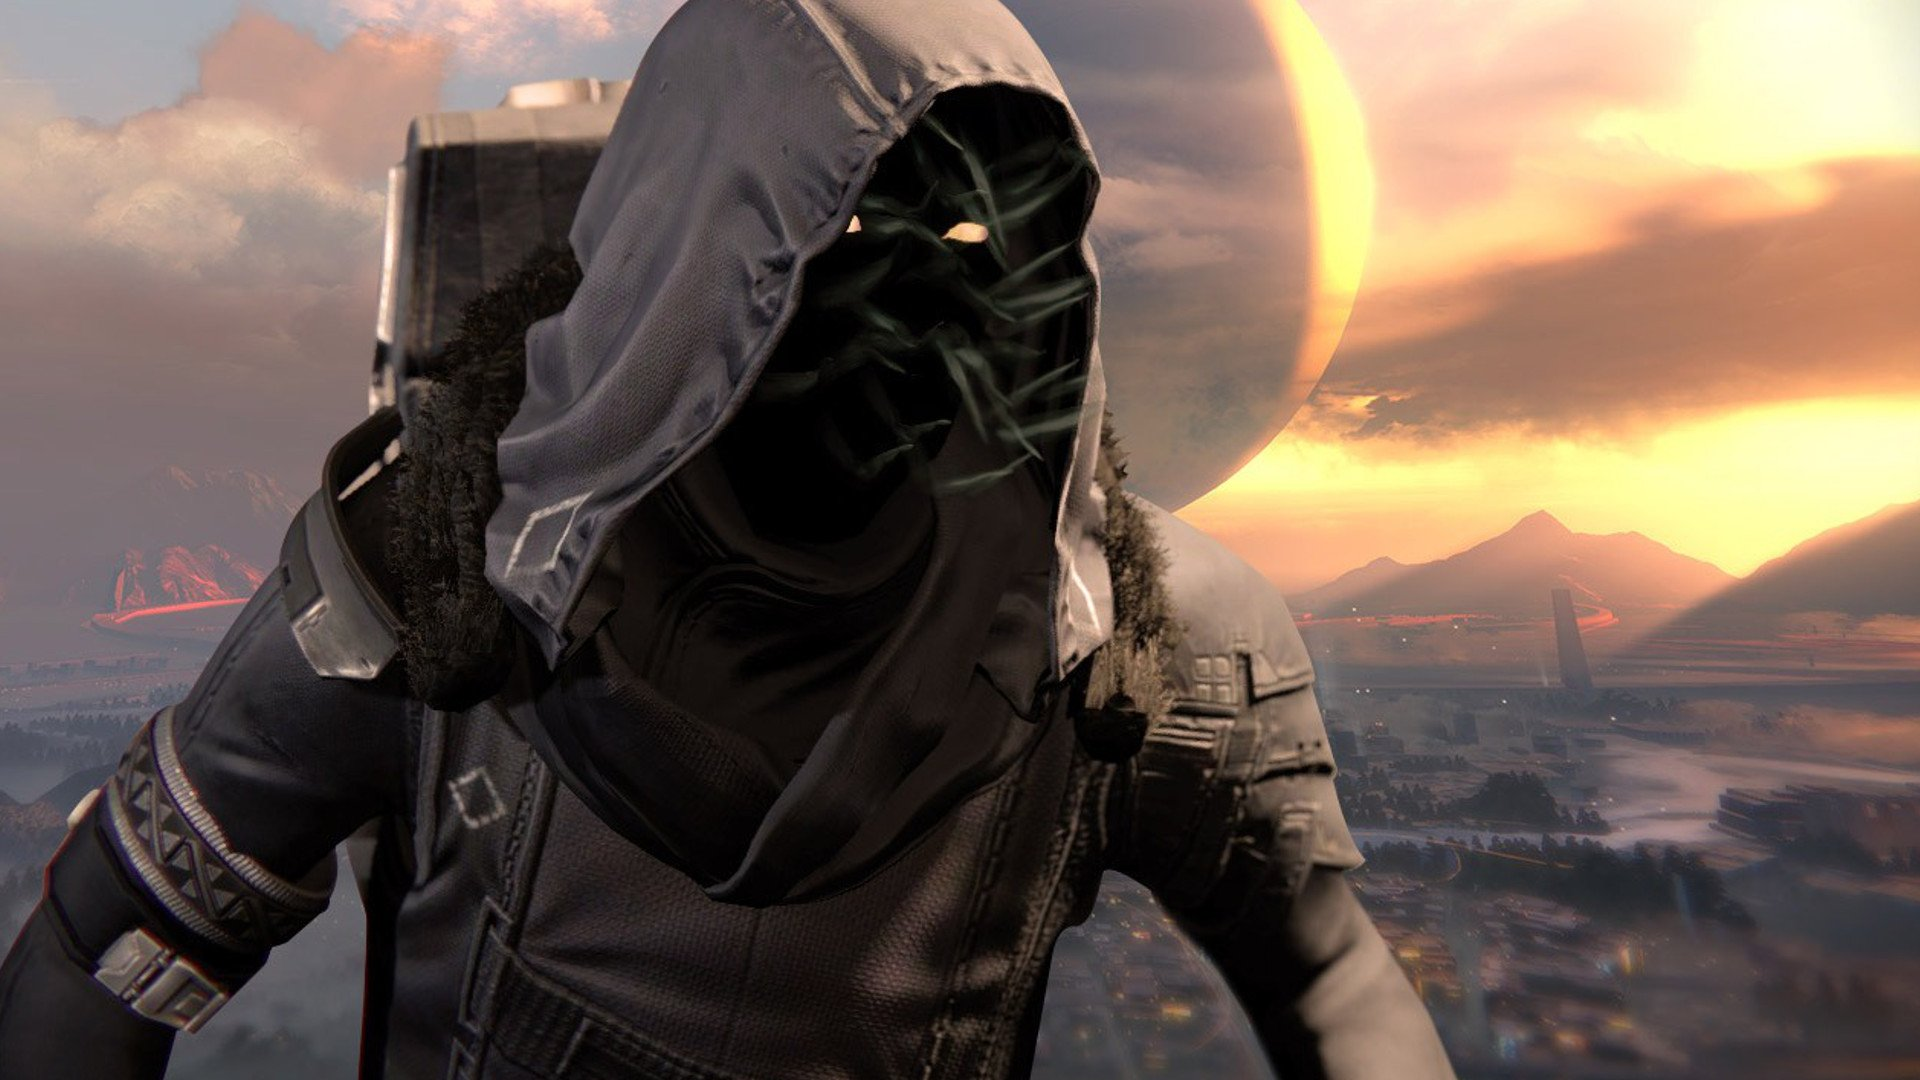 Xur can be found in the Hangar section of the Tower in Destiny 2 during the week of February 8.